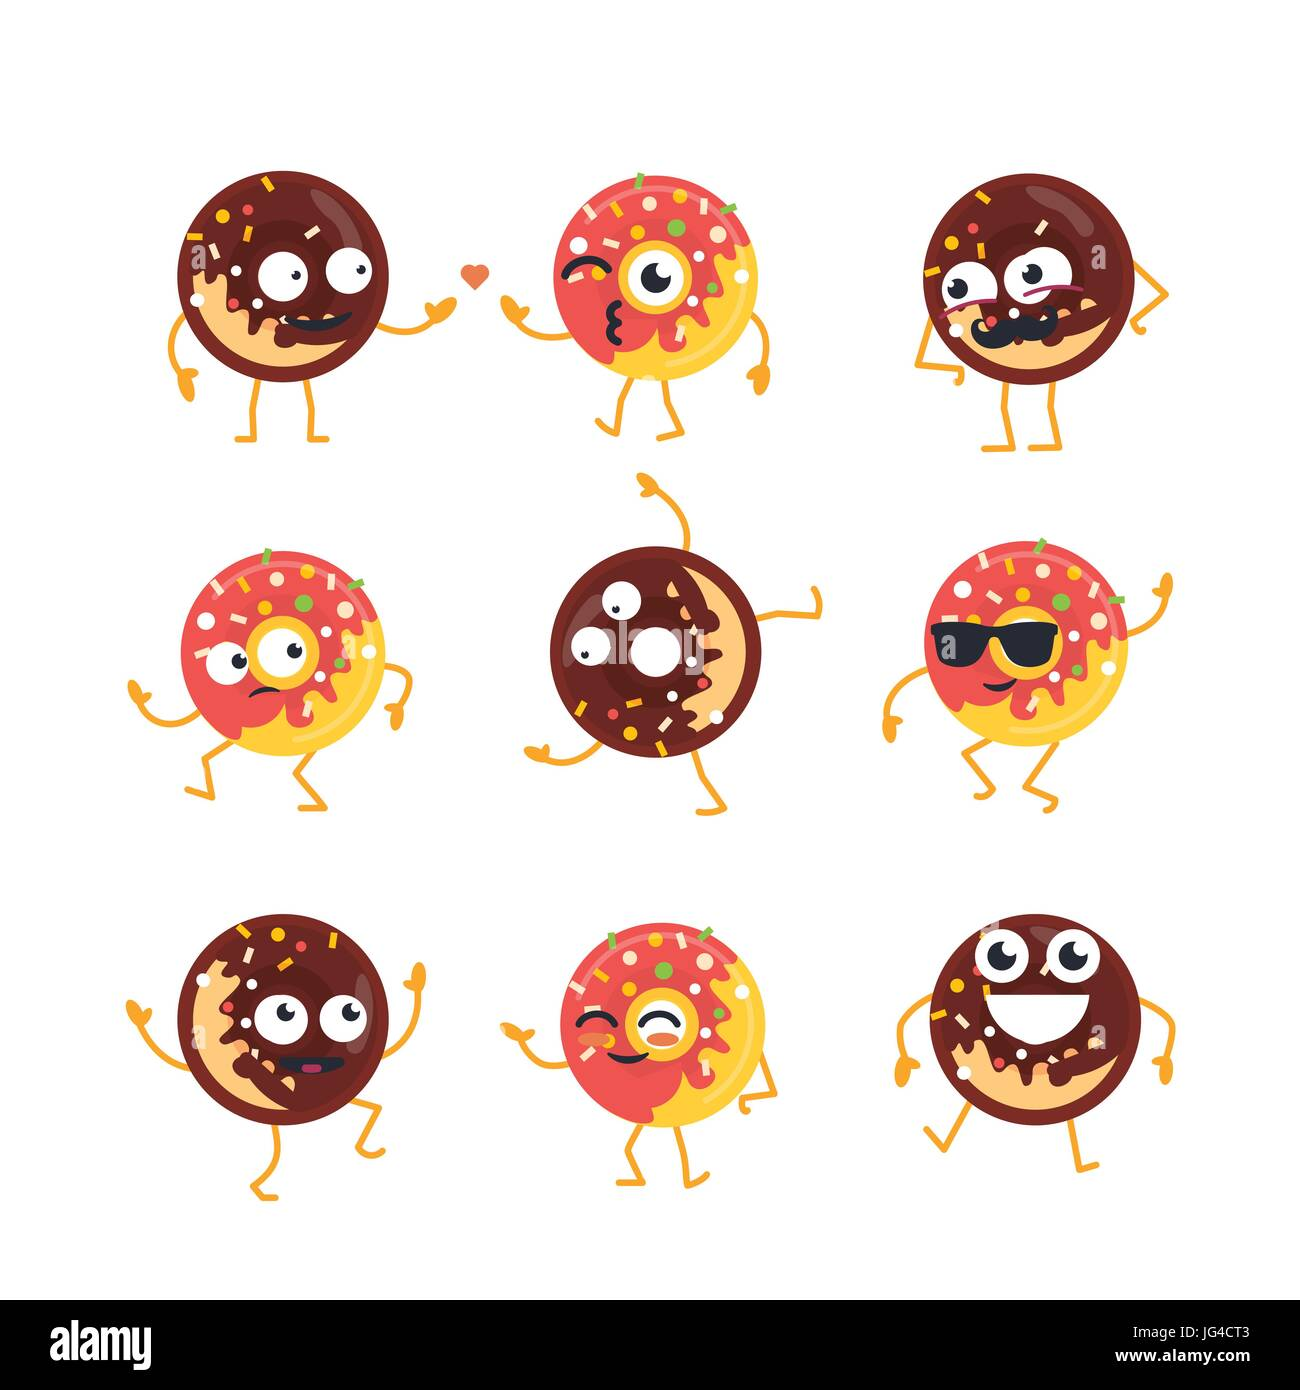 Donuts Cartoon Character - modern vector template set of mascot illustrations. Gift images of donuts dancing, smiling, - Stock Vector